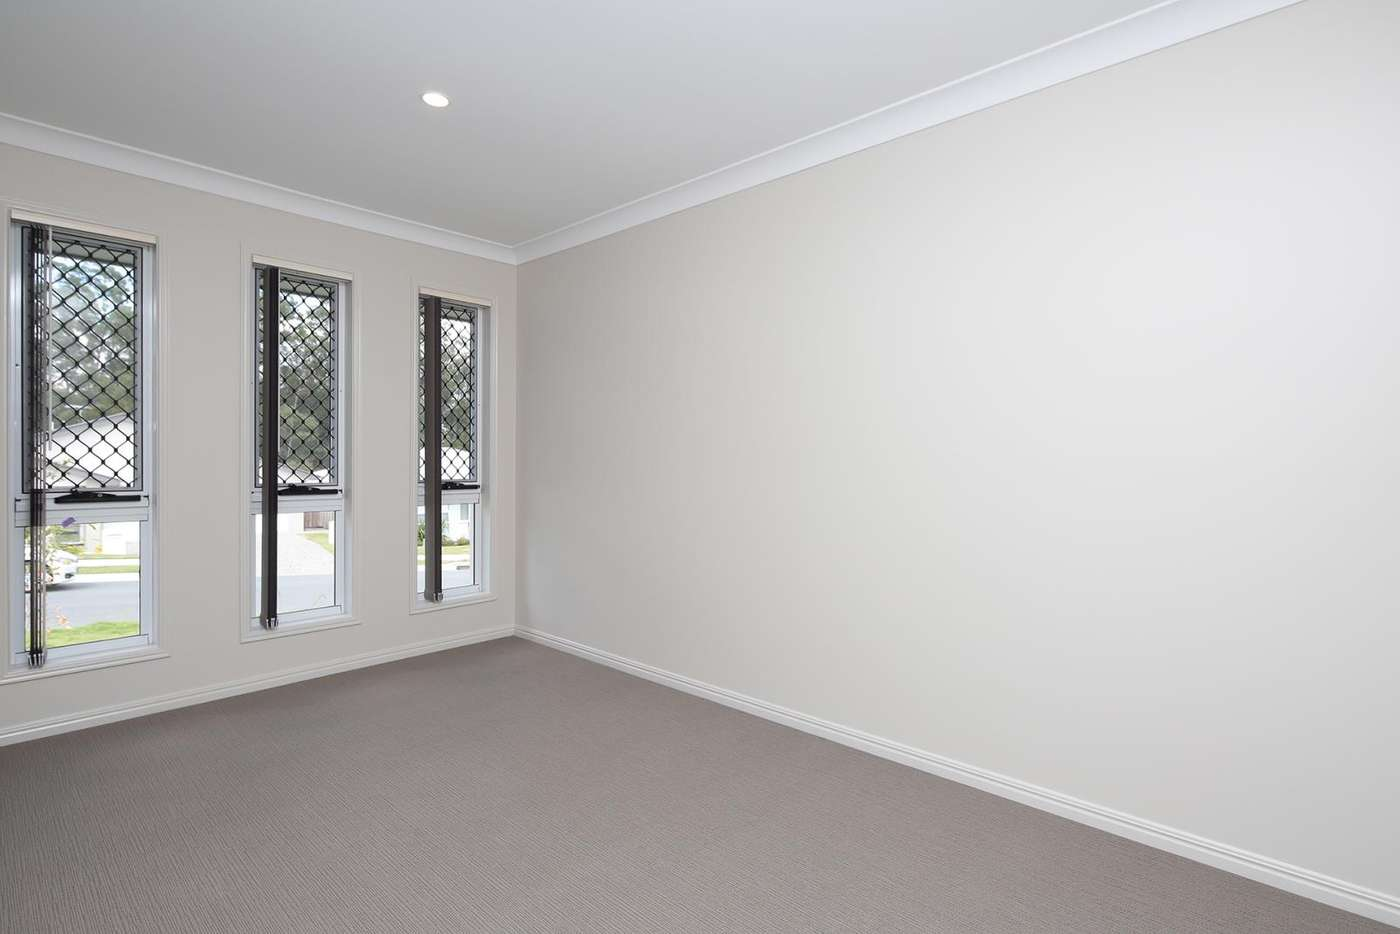 Sixth view of Homely house listing, 6 Kains Avenue, Brassall QLD 4305